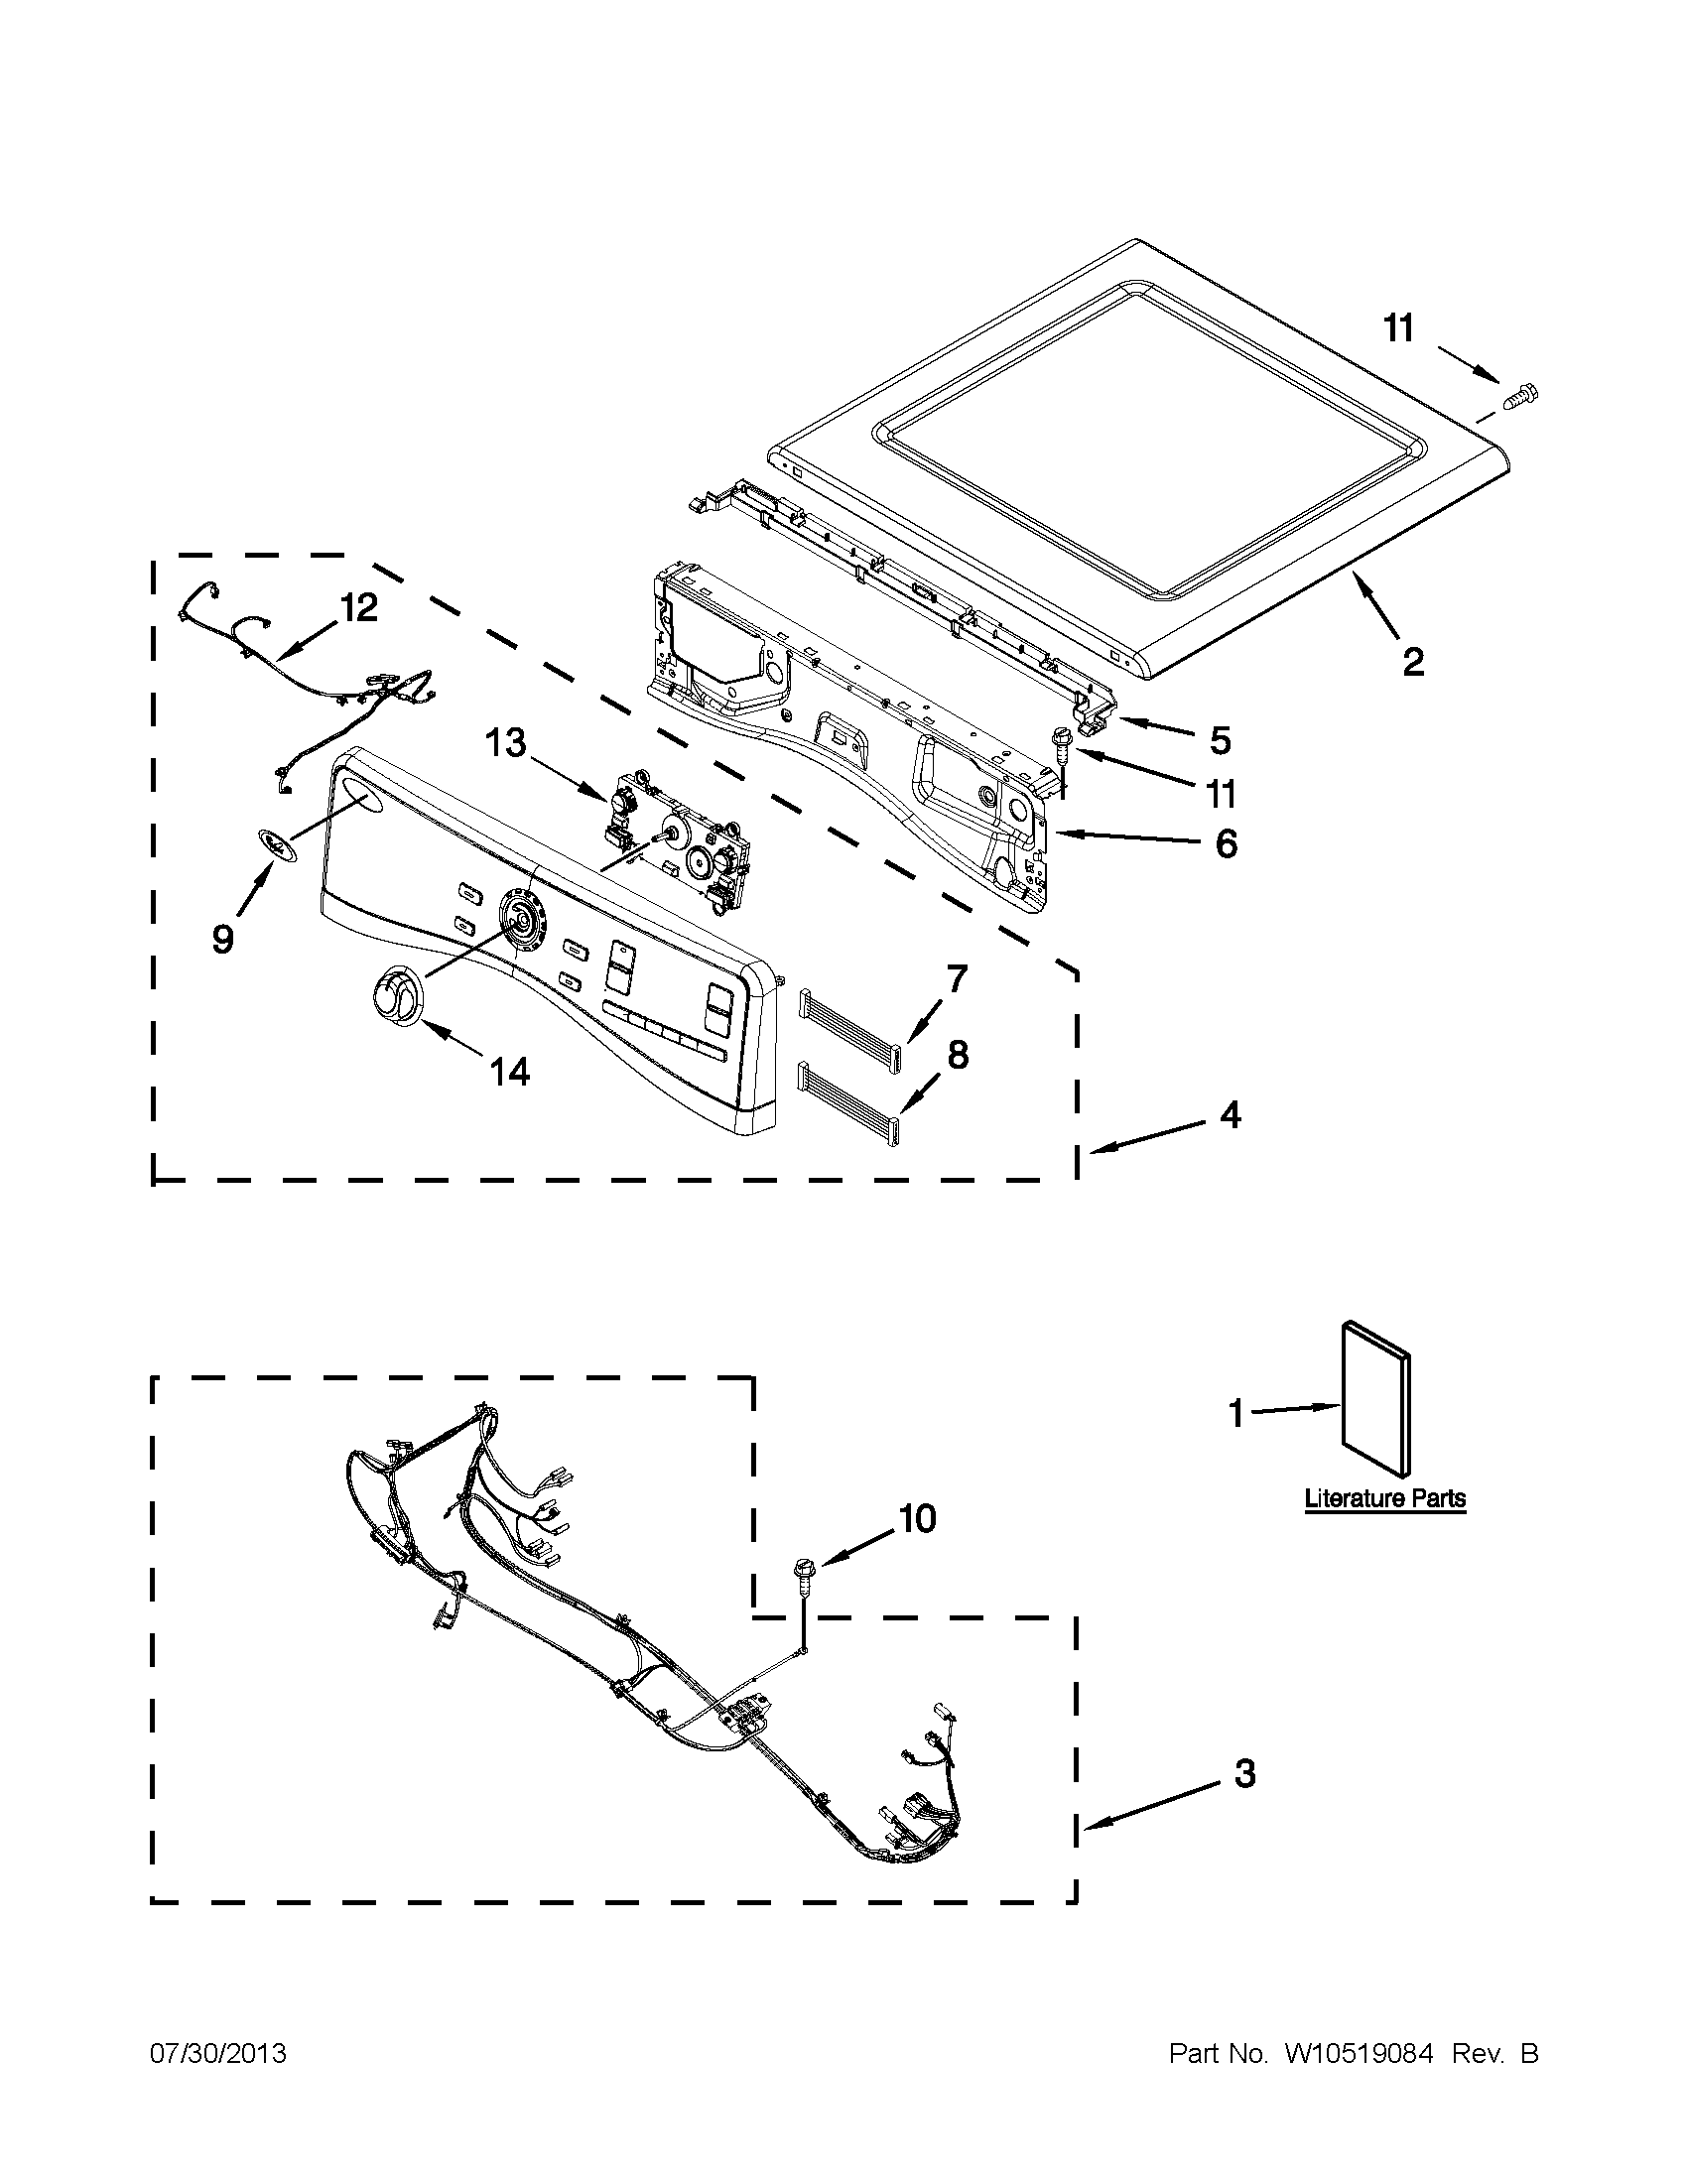 Whirlpool YWED97HEXL4 top and console parts diagram